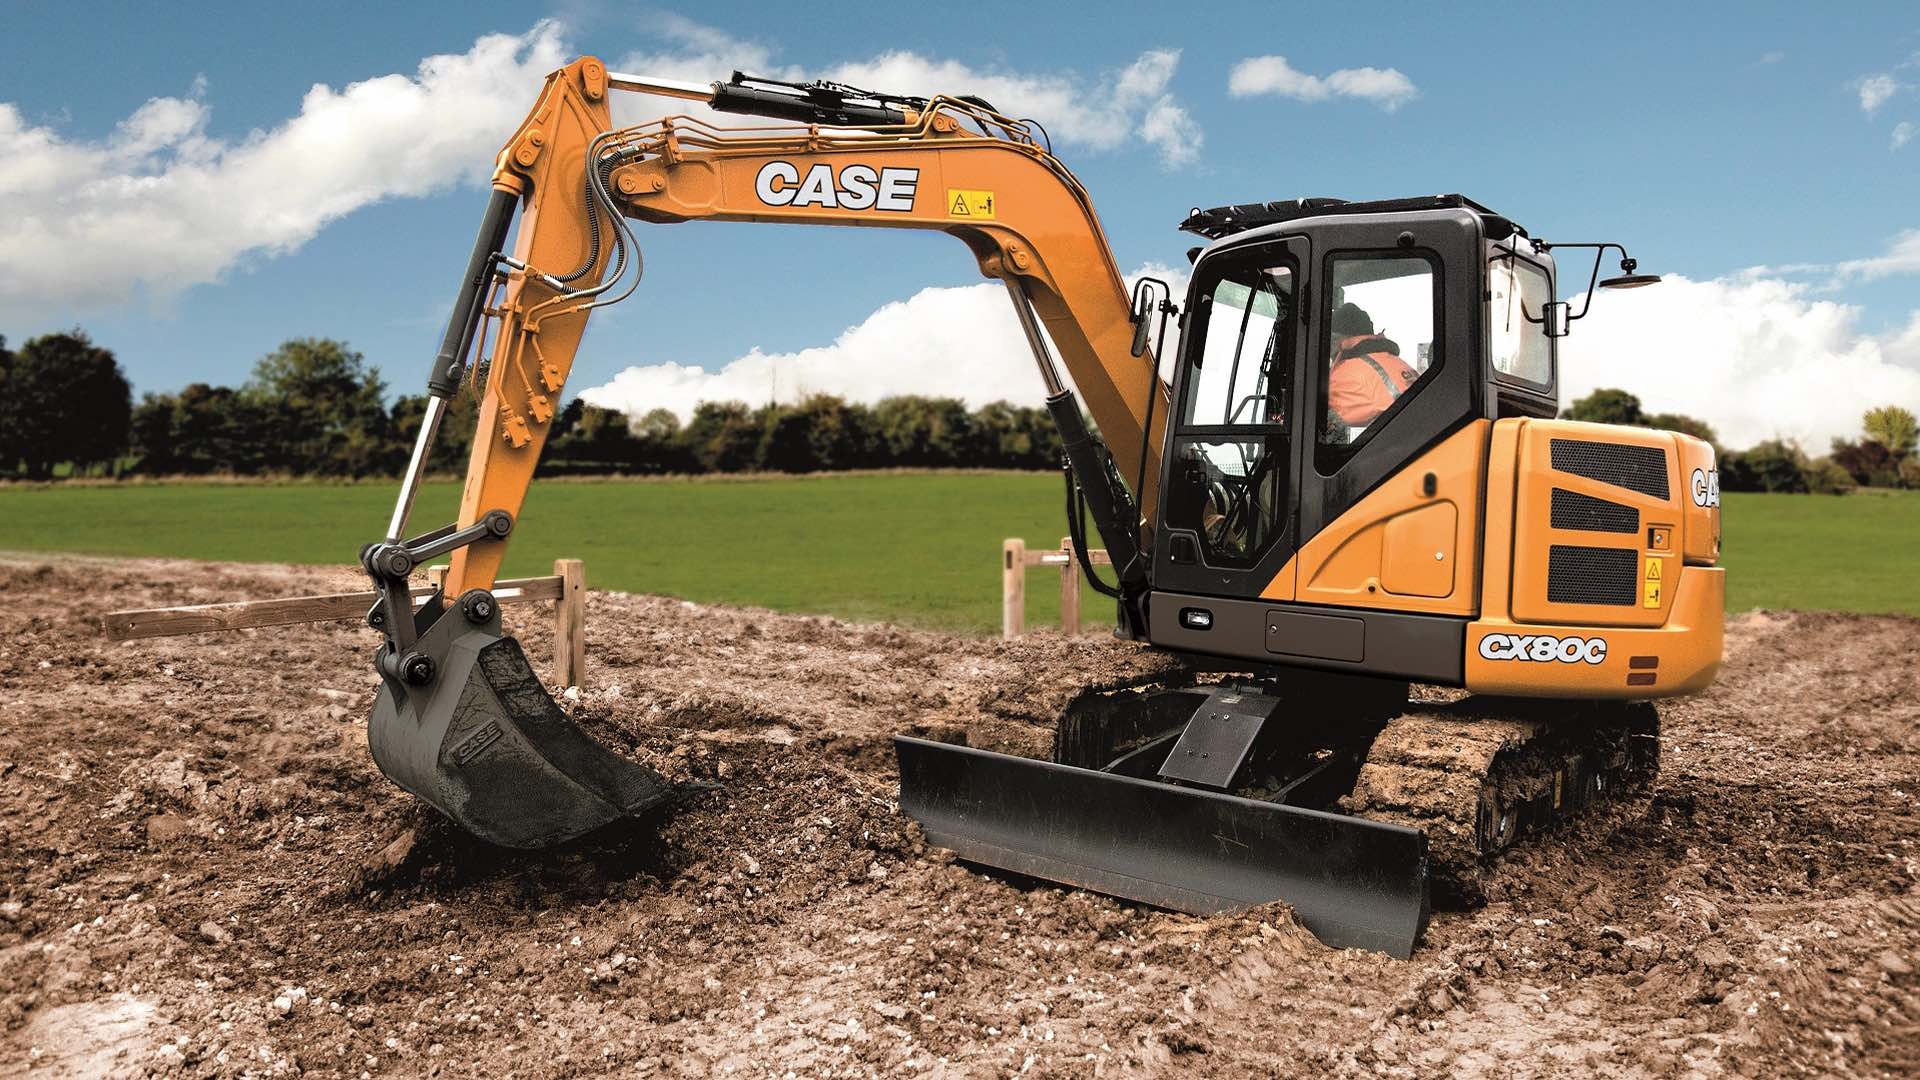 Excavator for sale and hire Victoria